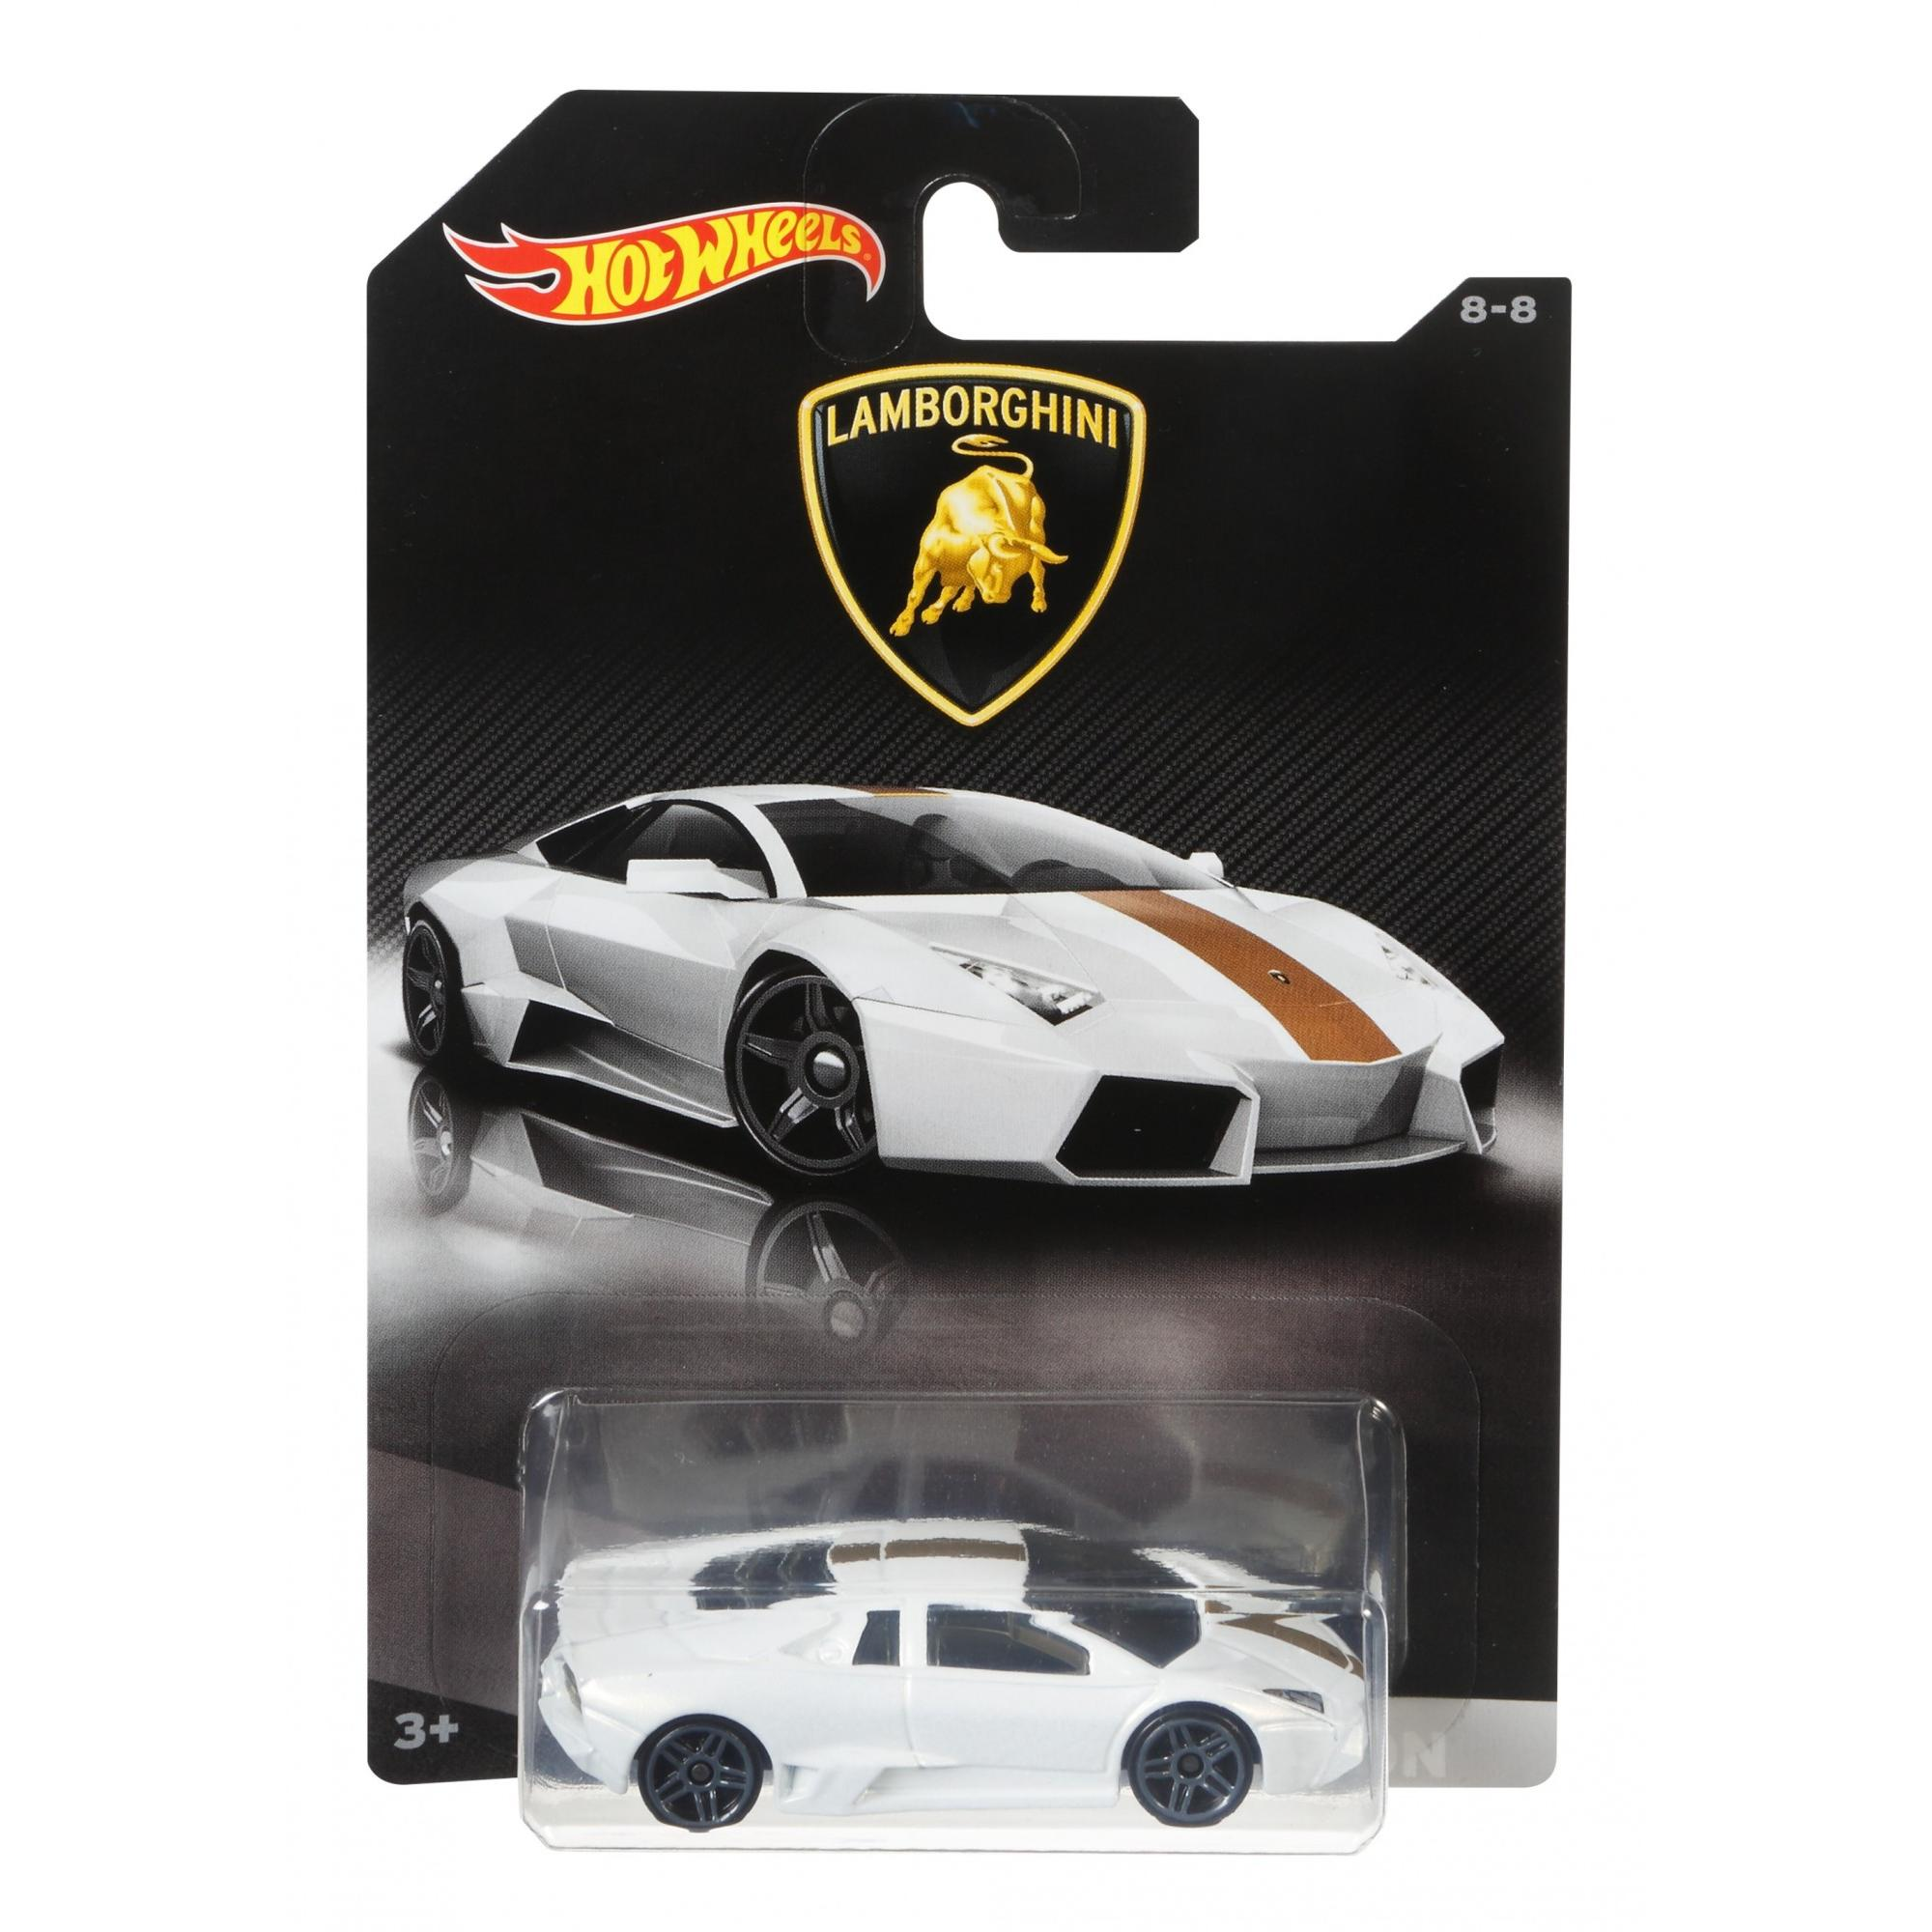 Hot Wheels 1:64 lamborghini (styles may vary) - Walmart.com on jaguar f-type with rims, humvee with rims, lotus exige with rims, bugatti veyron with rims, ford transit with rims, gold lamborghini with rims, lamborghini gallardo with rims, range rover with rims, lamborghini cars on rims, lamborghini murcielago with rims, lamborghini rims black, nissan gt-r with rims, chevrolet captiva with rims, subaru forester with rims, challenger with rims, camaro with rims, lamborghini on 24 inch rims, 2013 taurus with rims, nissan leaf with rims, land rover discovery with rims,